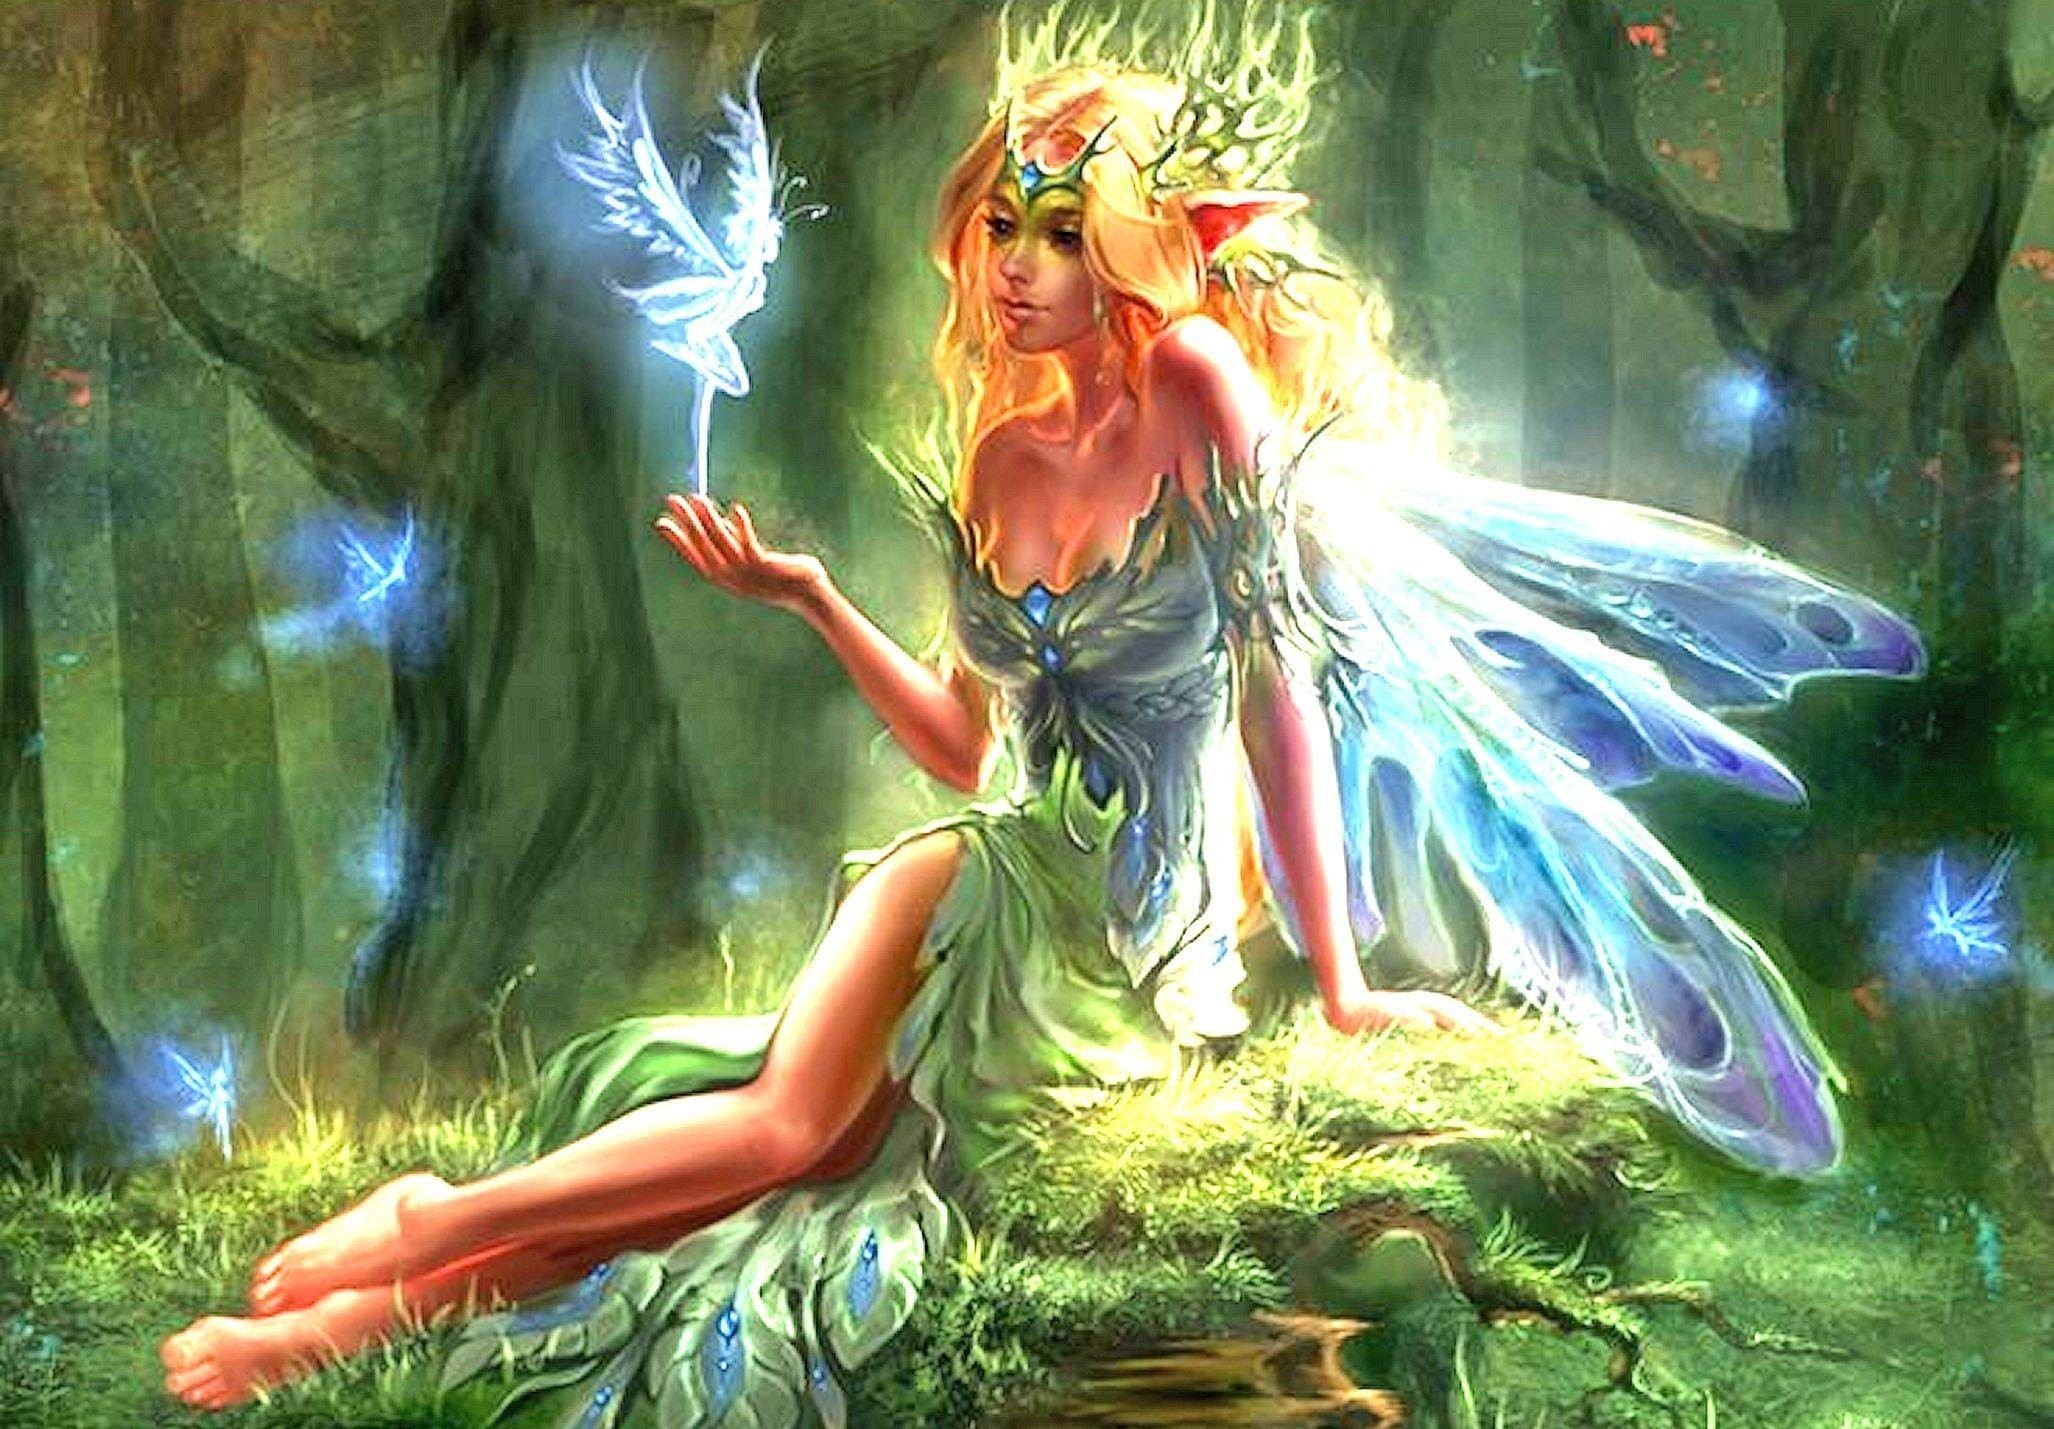 Princess Wallpaper For Girls Fantasy Fairies Wallpapers 62 Images